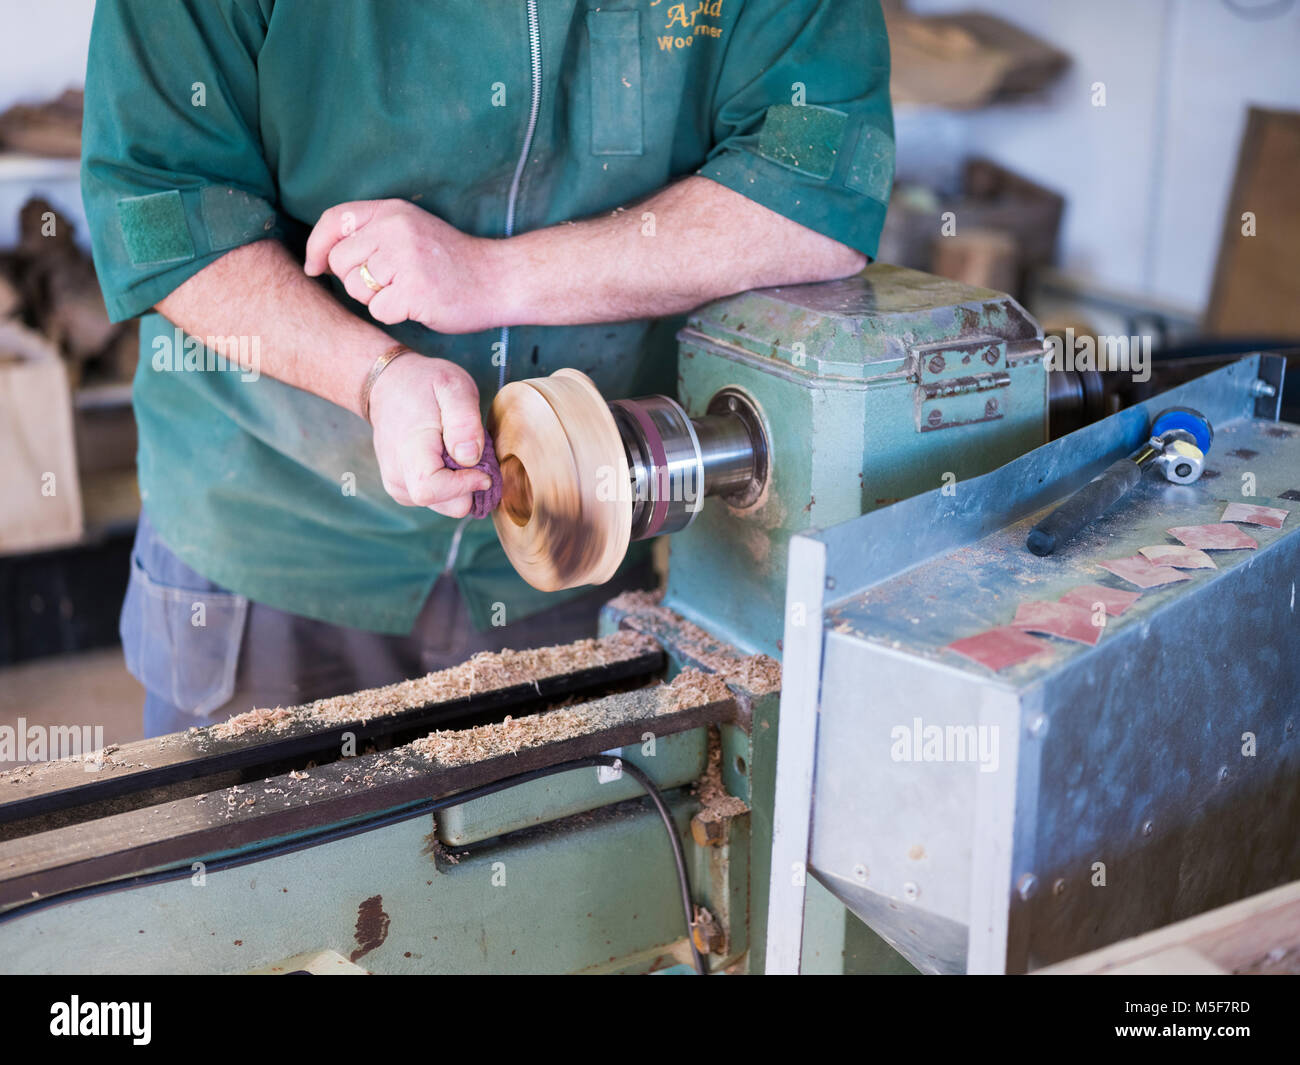 A woodworker, demonstrating spinning. - Stock Image